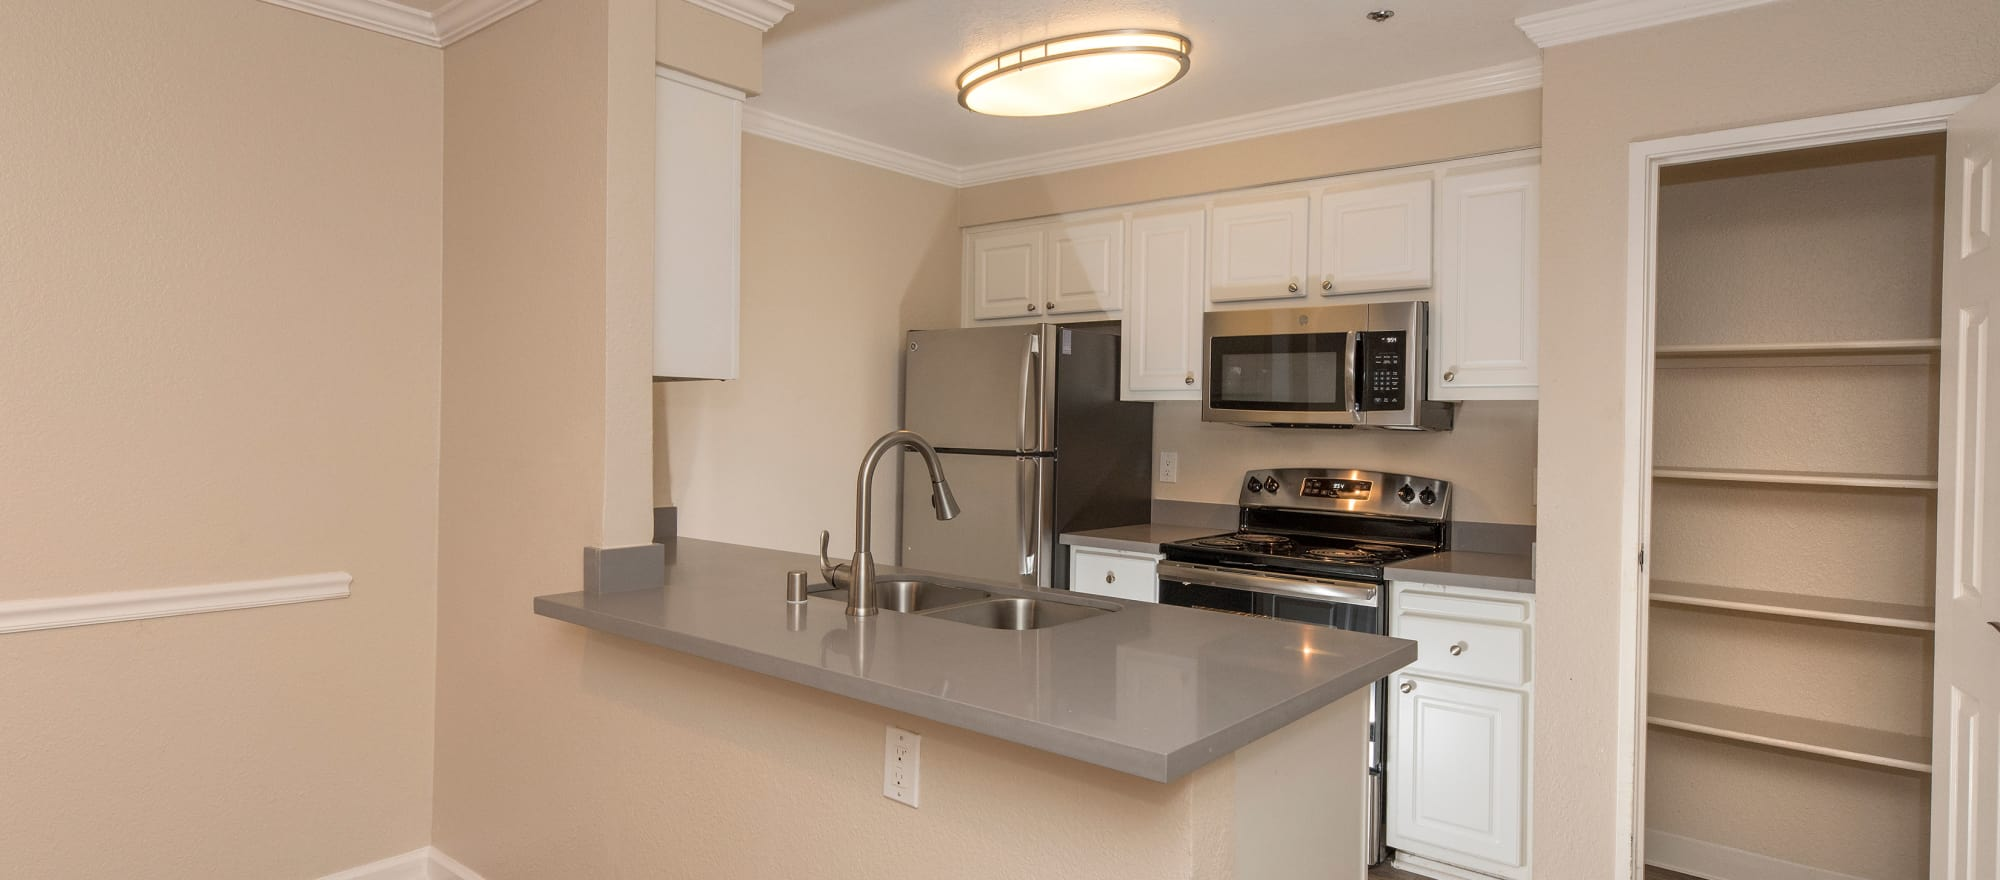 Lovely model kitchen at Sterling Heights Apartment Homes in Benicia, California